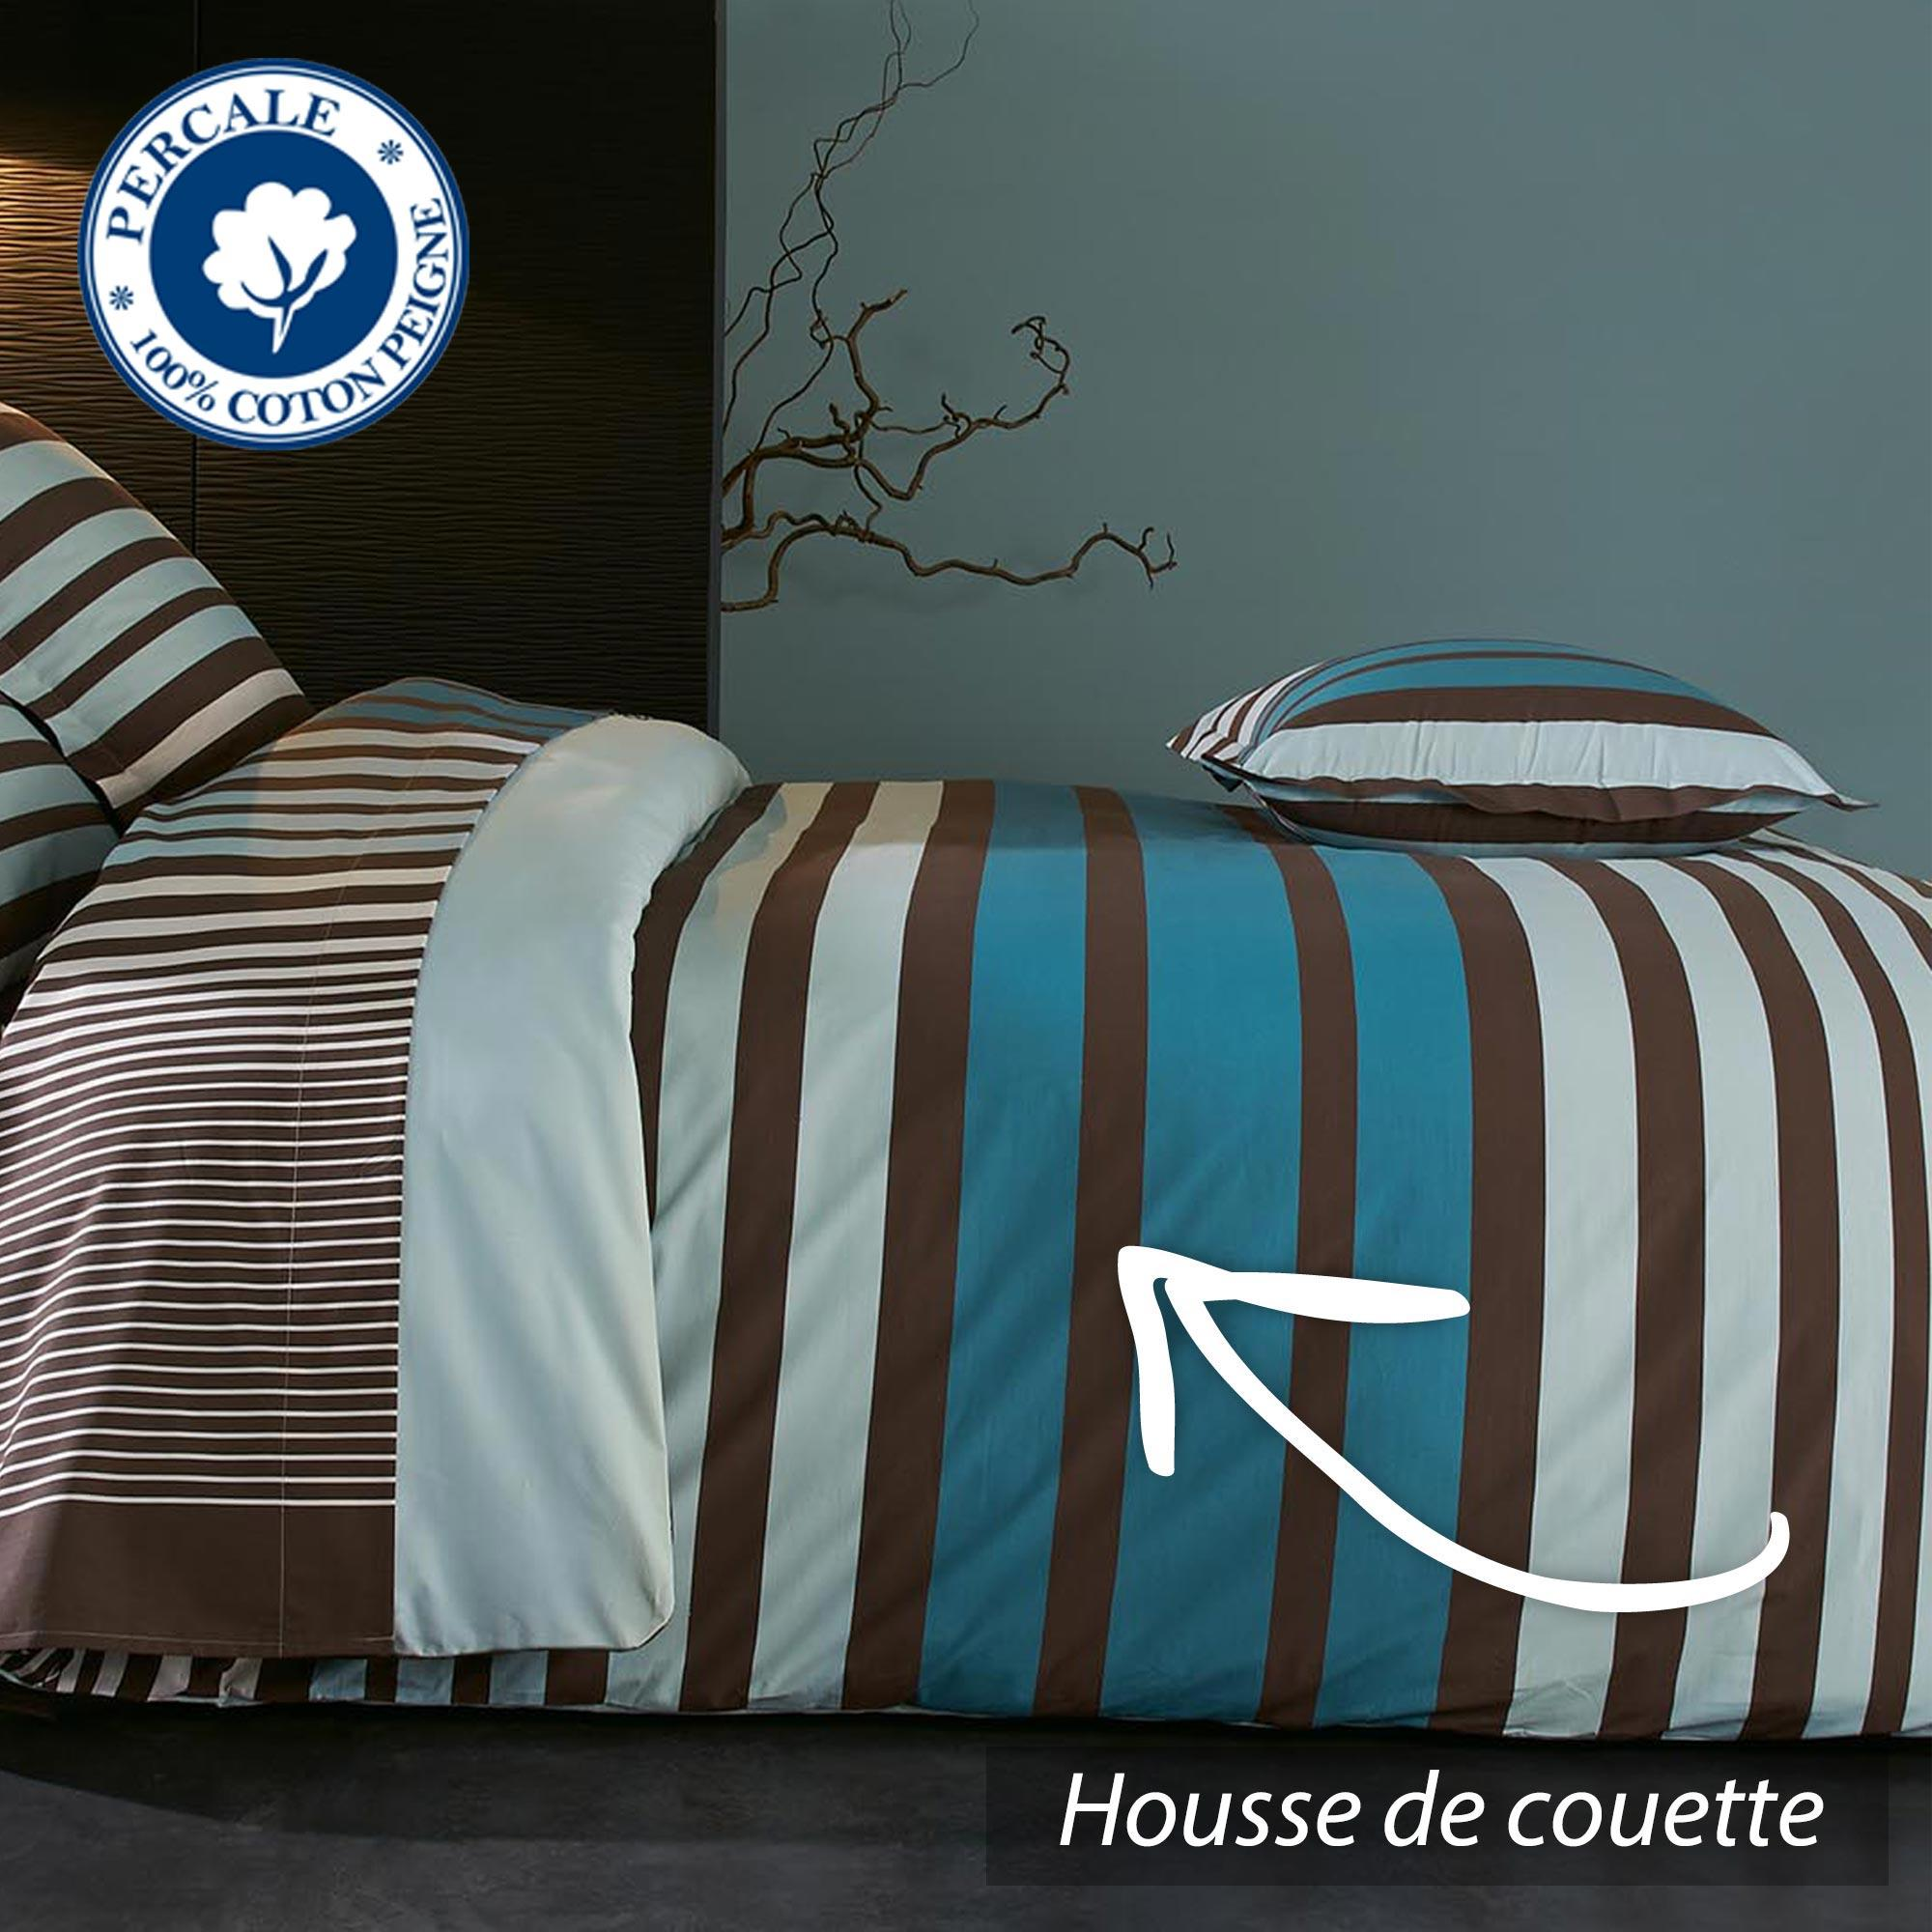 housse de couette percale pur coton peign 260x240 cm stripe bleu linnea ve. Black Bedroom Furniture Sets. Home Design Ideas